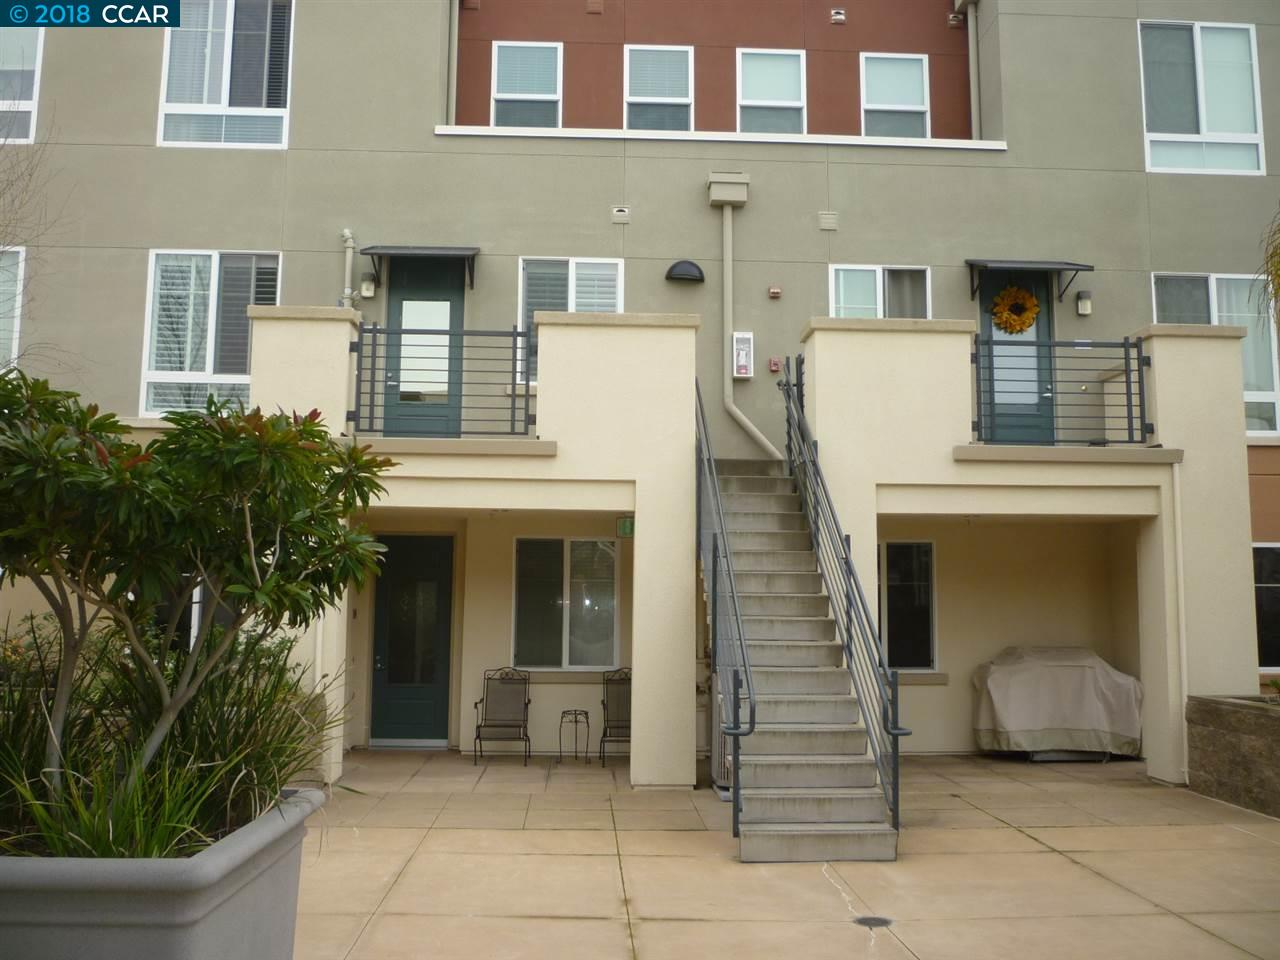 Condominium for Rent at 88 E 6Th Street 88 E 6Th Street Pittsburg, California 94565 United States